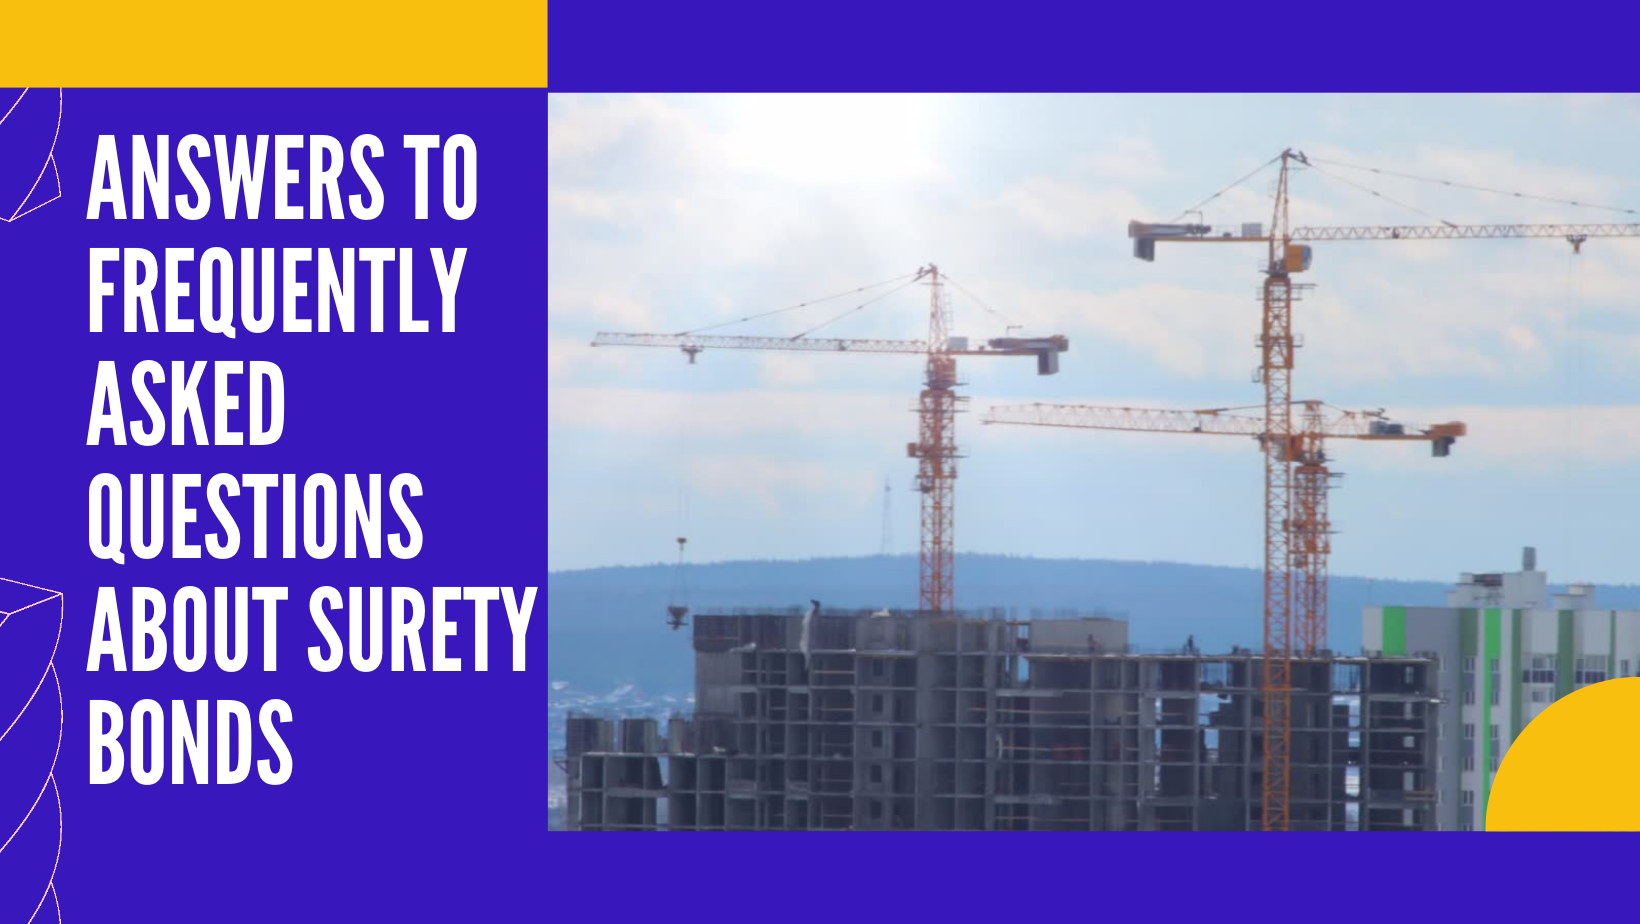 surety bond - what is the meaning of surety bond - construction of building in blue background